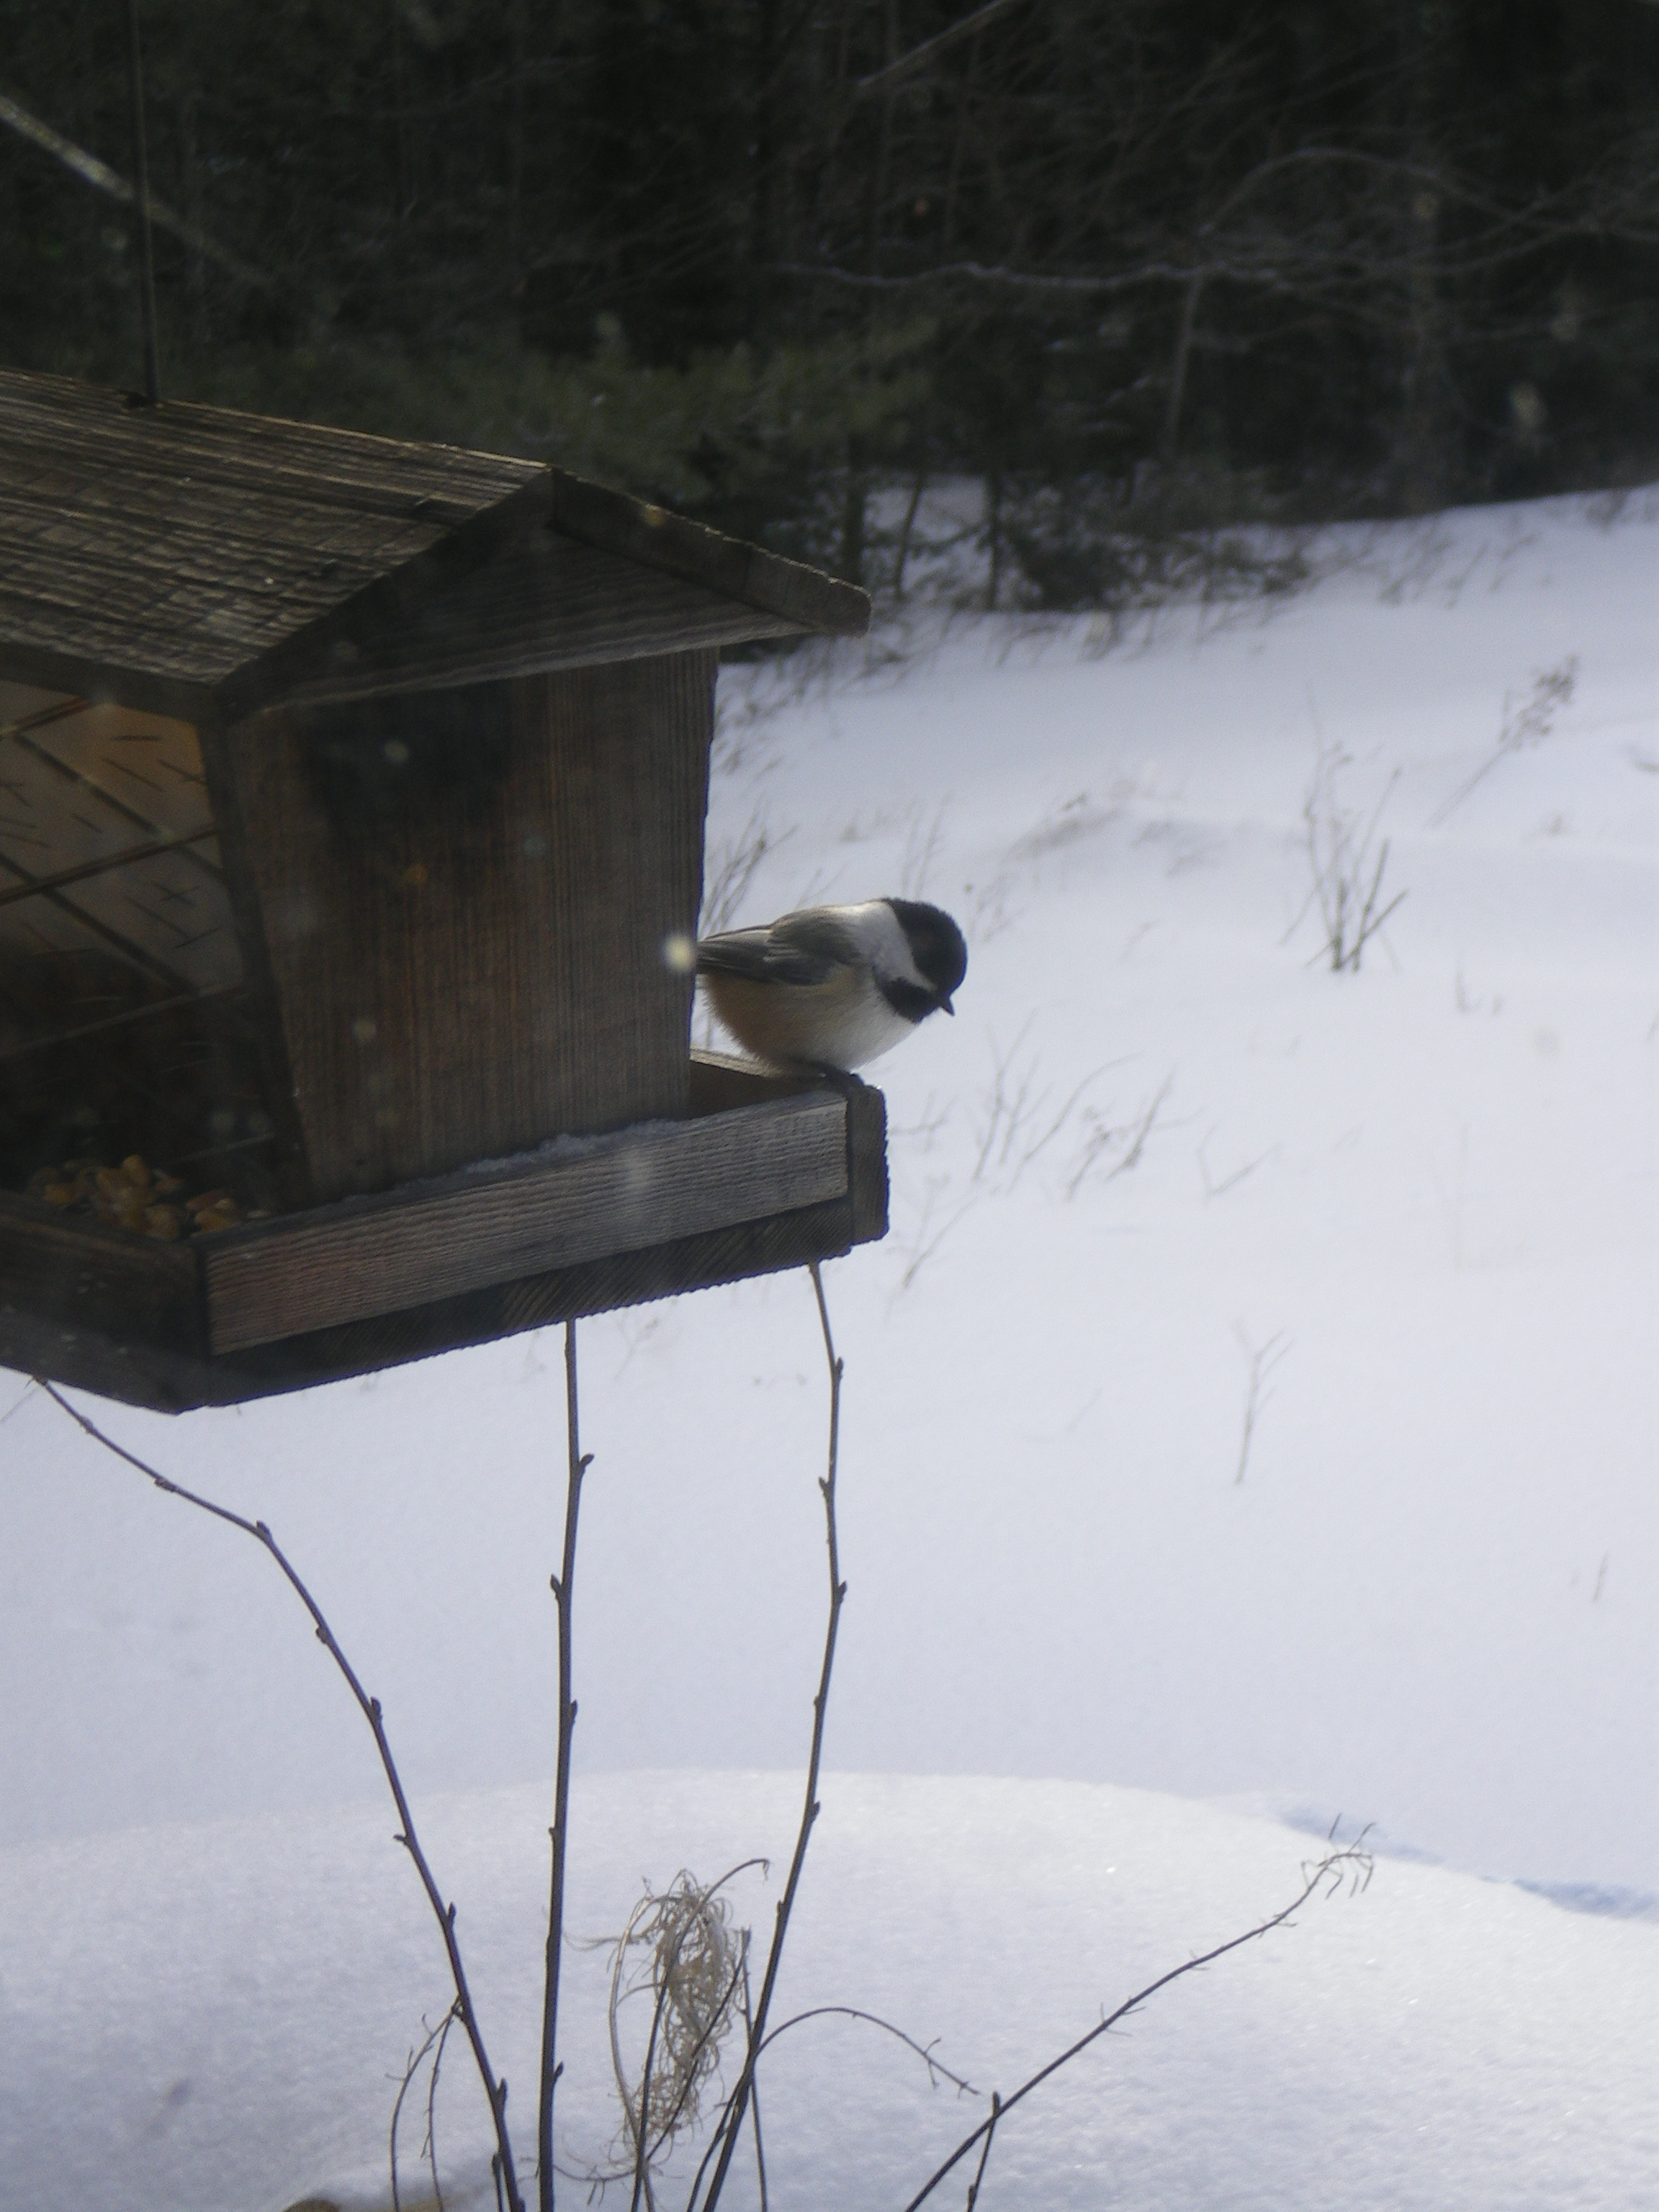 Black-capped chickadee through a dirty window